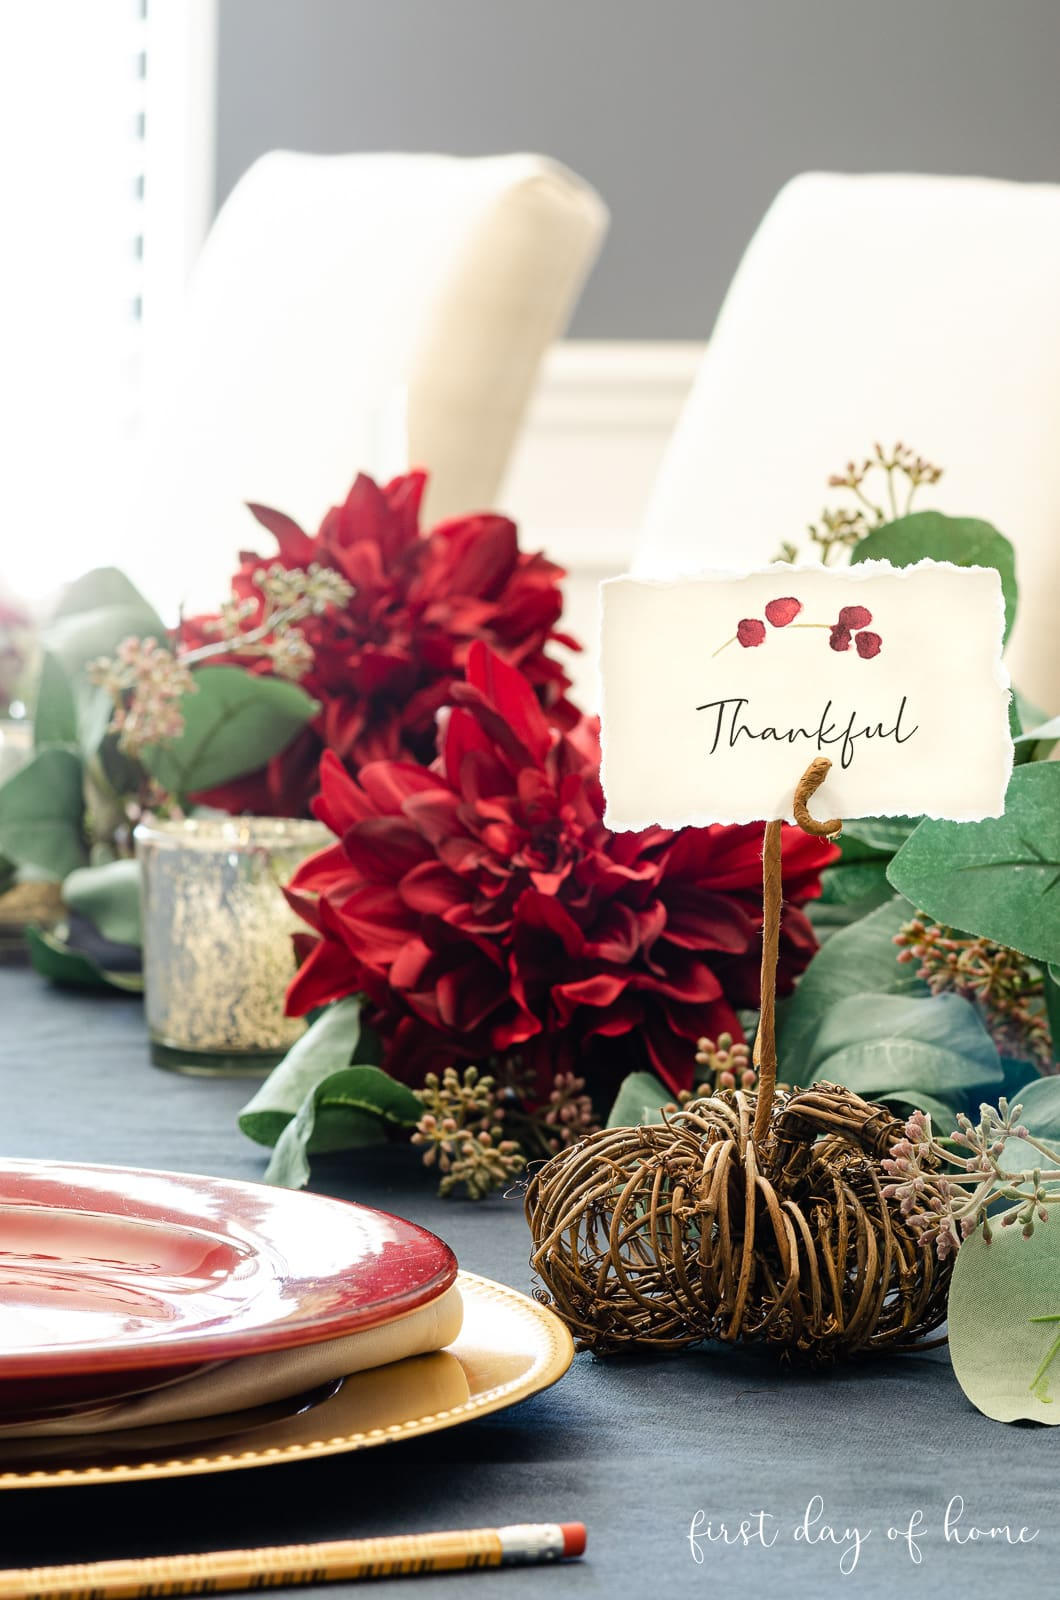 Simple Tablescapes for Thanksgiving using navy tablecloth, greenery garland and burgundy accents with DIY place cards